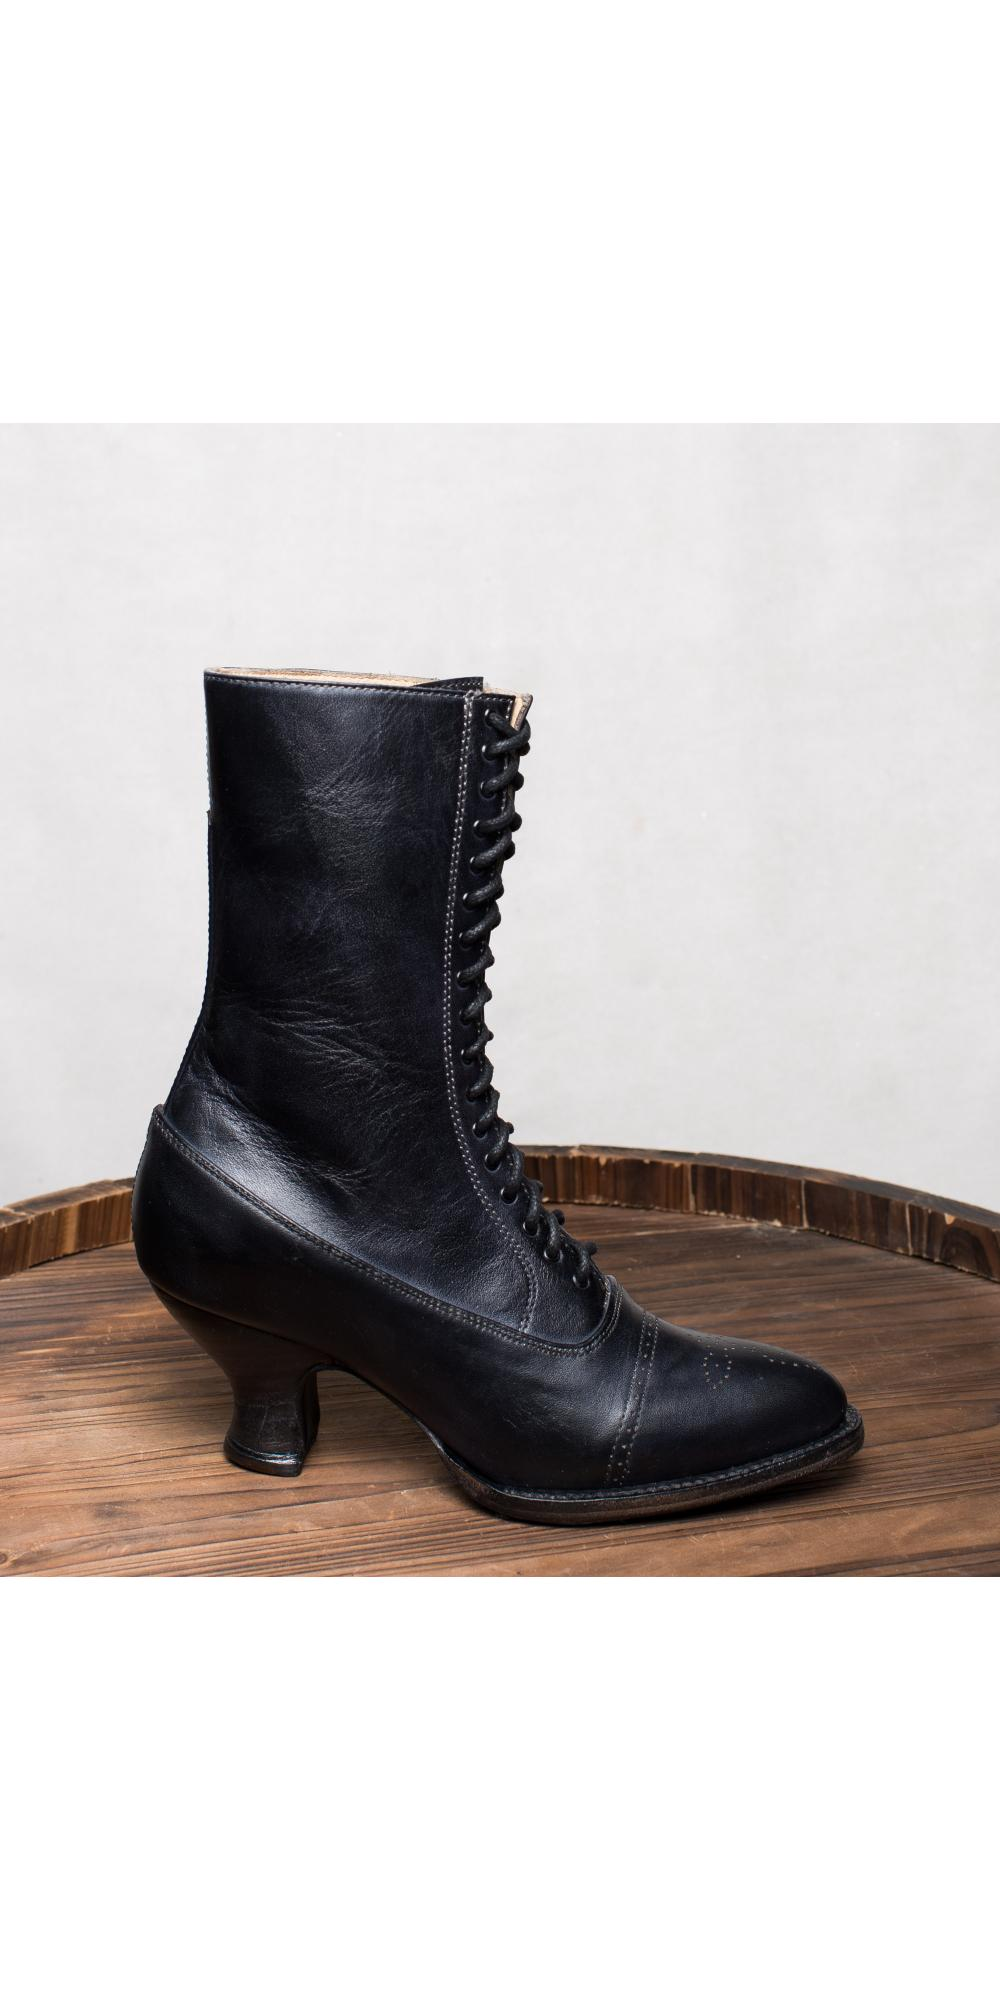 Wedding Boots And Jeans